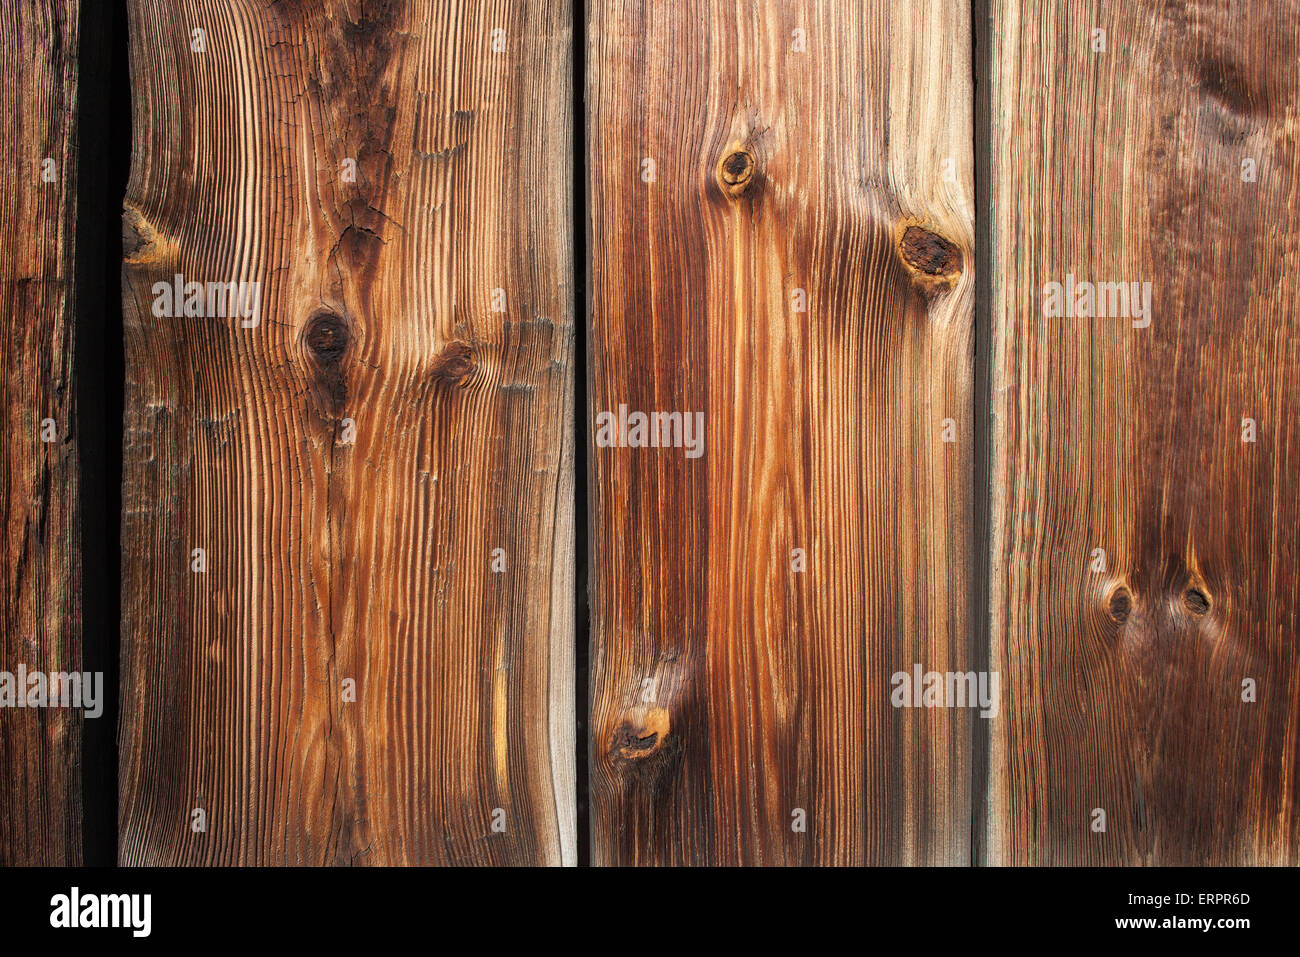 Retro wood planks with knots background decor element with beautiful texture - Stock Image